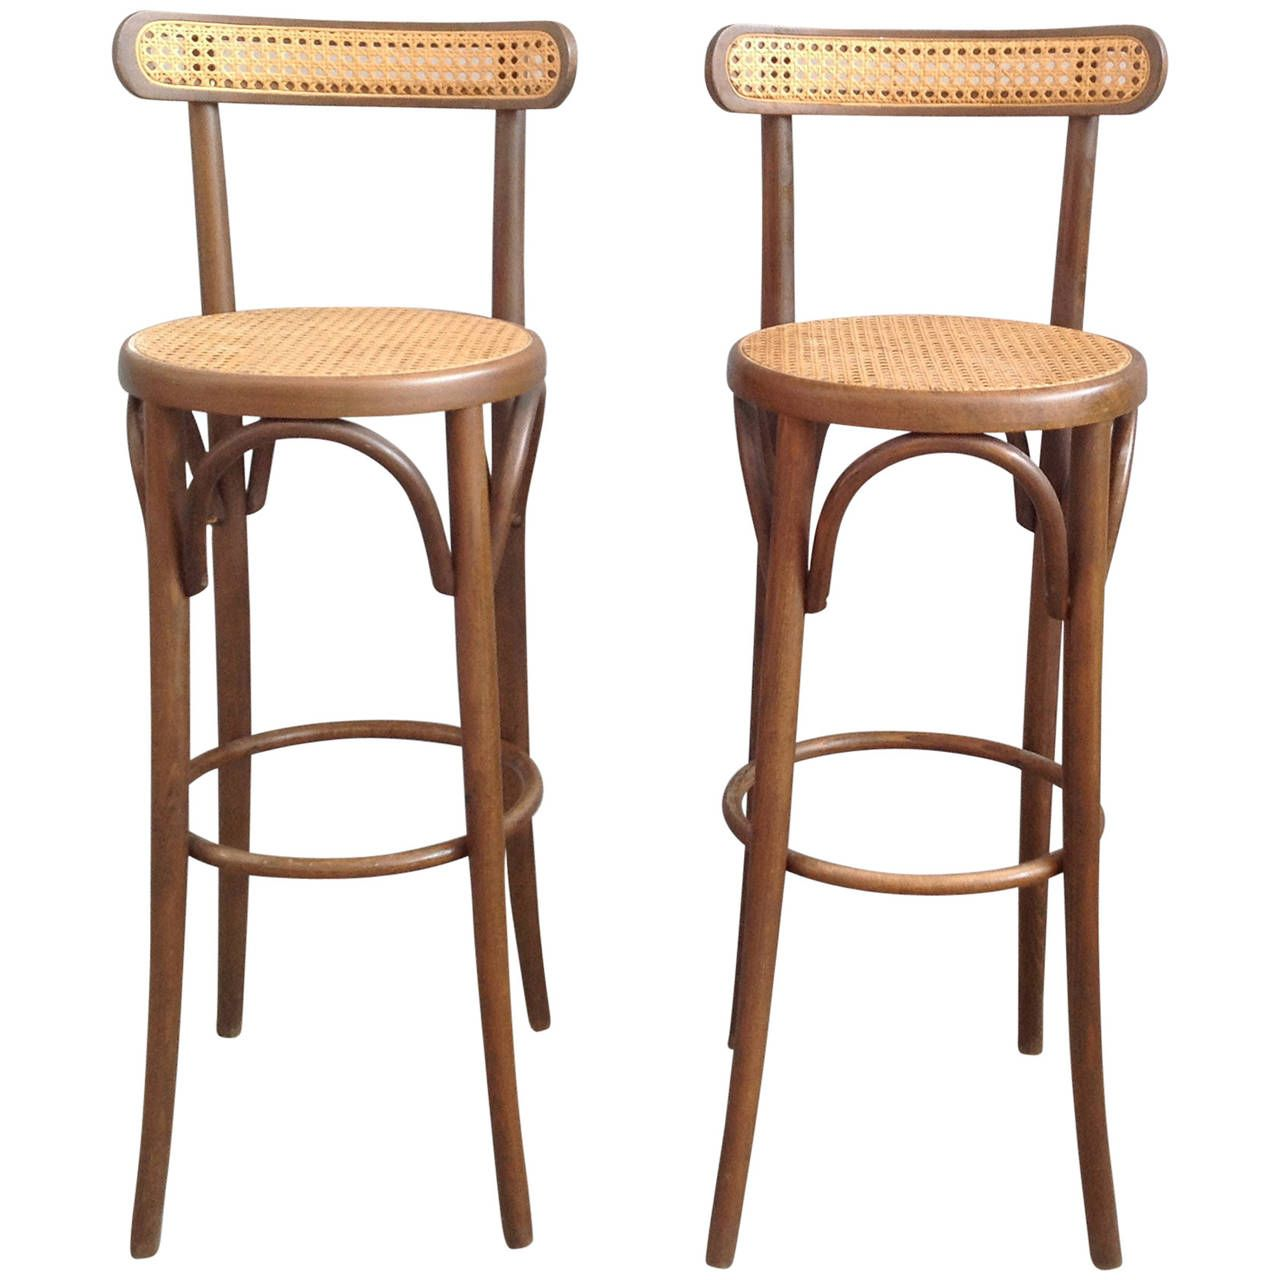 Pair Of Bar Stools In The Thonet Style